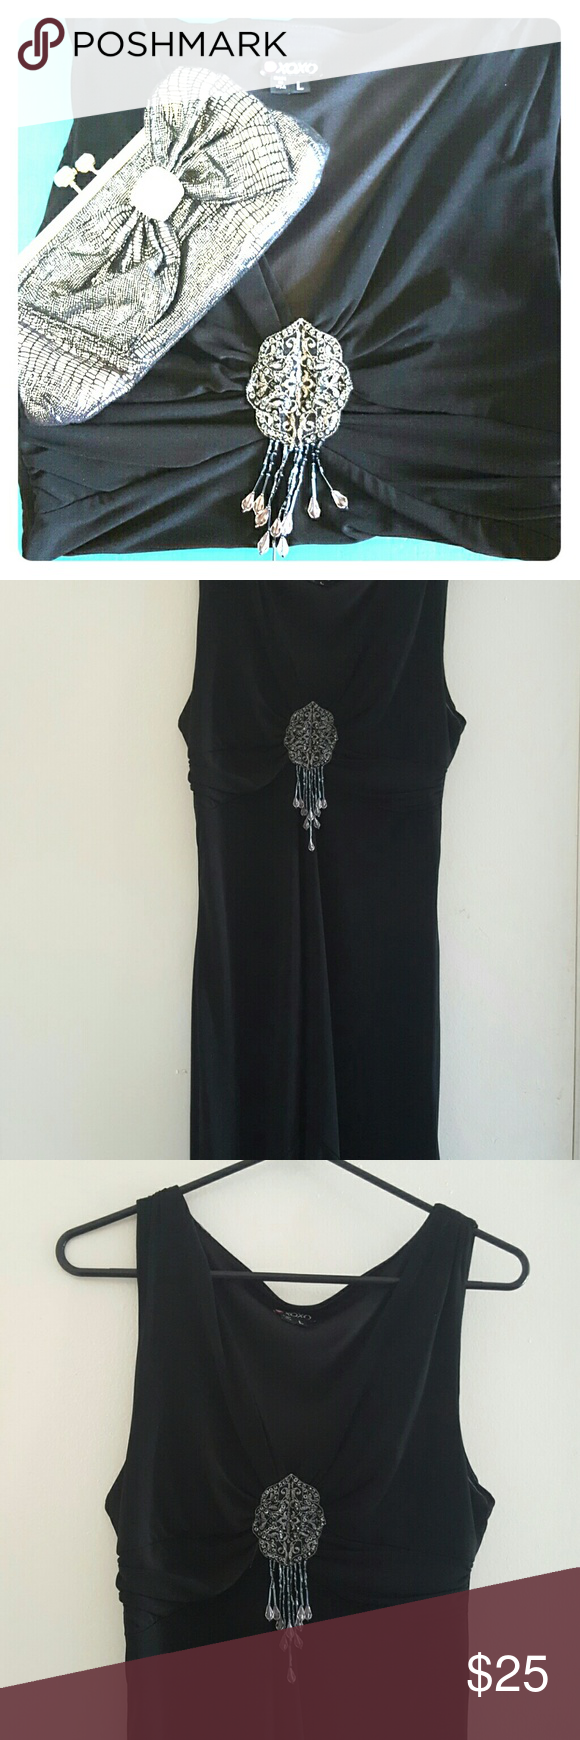 XOXO Black Dress This is a very nice black dress I wore to a charity event. Its fitted in the body with a slight plunge in the neckline. The bottom is a high low with a slight flair. It had a full back. XOXO Dresses Midi